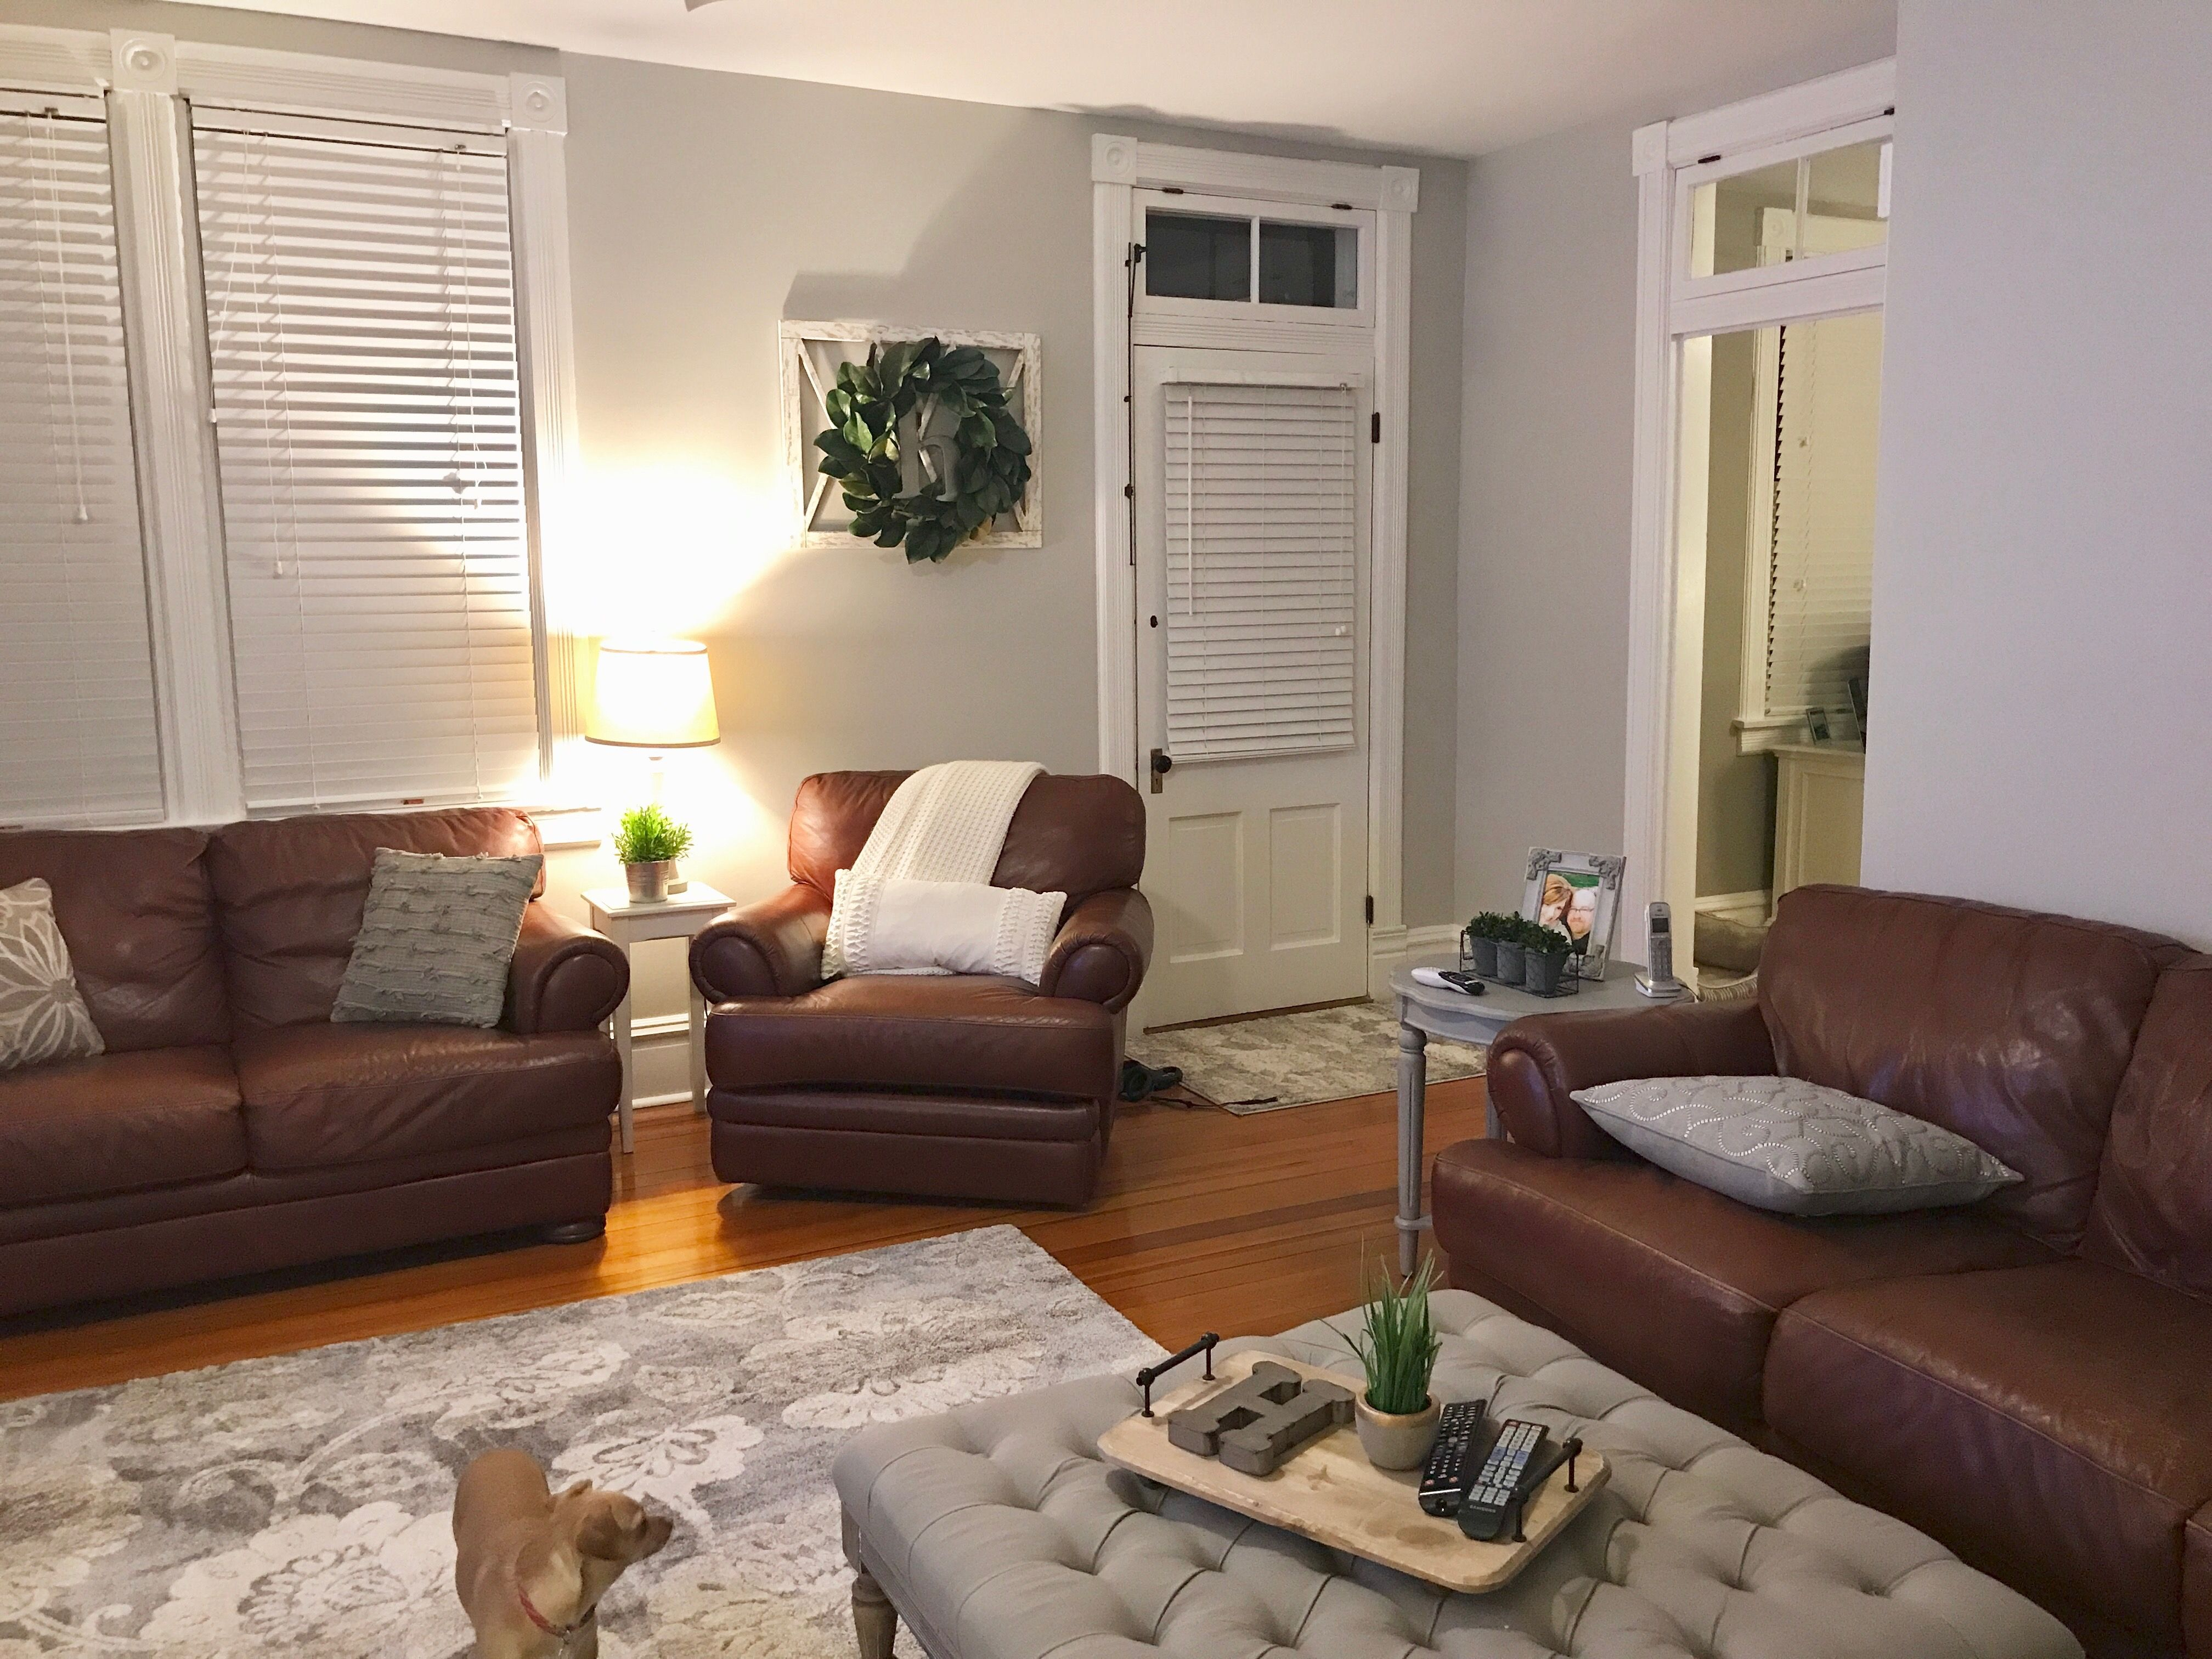 Sherwin Williams Repose Grey Paint Brown Leather Couch Recliner And Love Seat Boxwood Wreath An Brown Couch Living Room Living Room Grey Brown Living Room